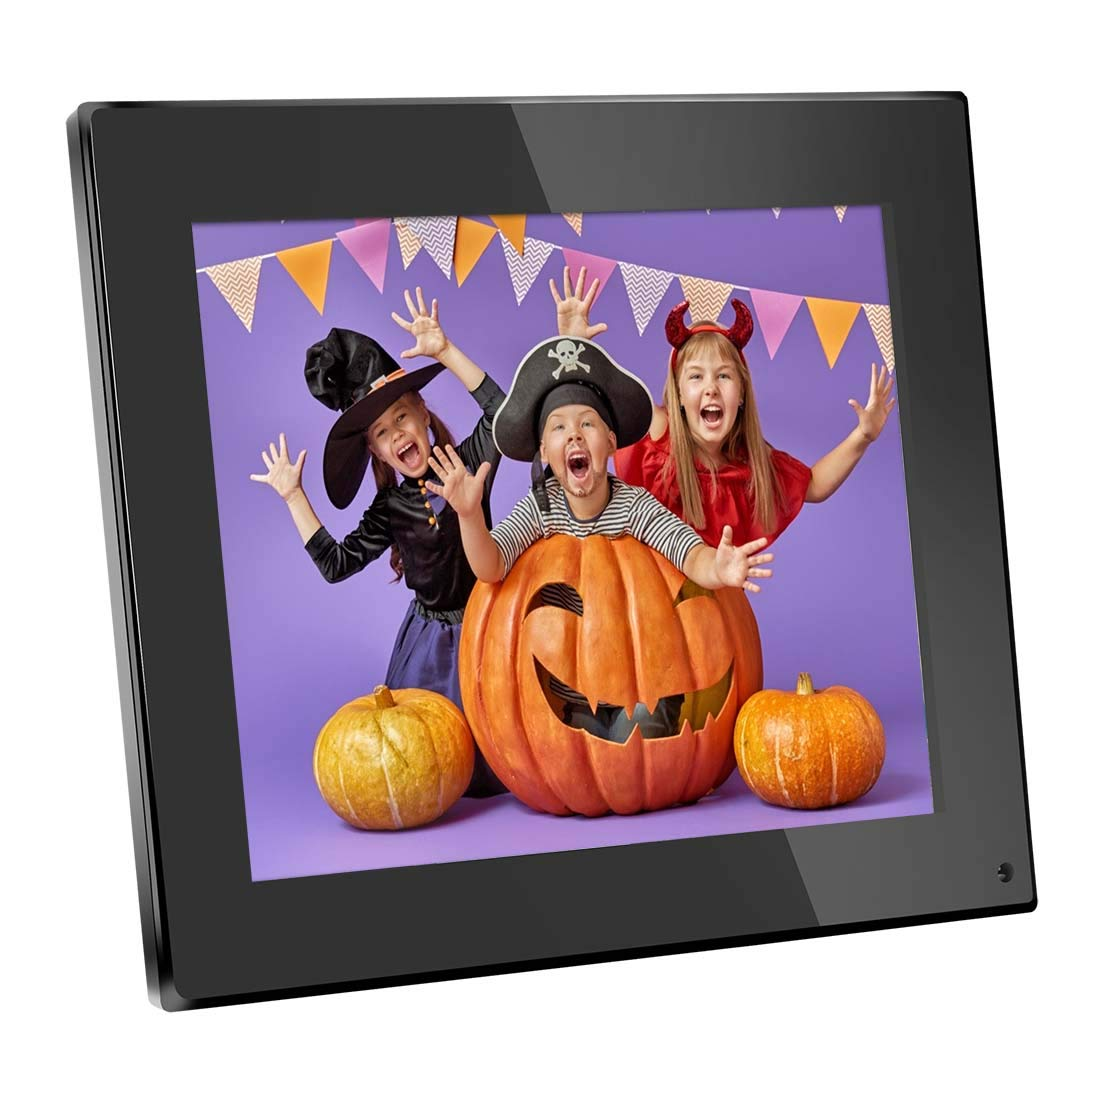 Digital Photo Frame 8 Inch Digital Picture Frame 1024x768(4:3) High Resolution LCD Screen Music Video Player/Alarm/Calendar with Remote Controler Black(M03) by Bsimb